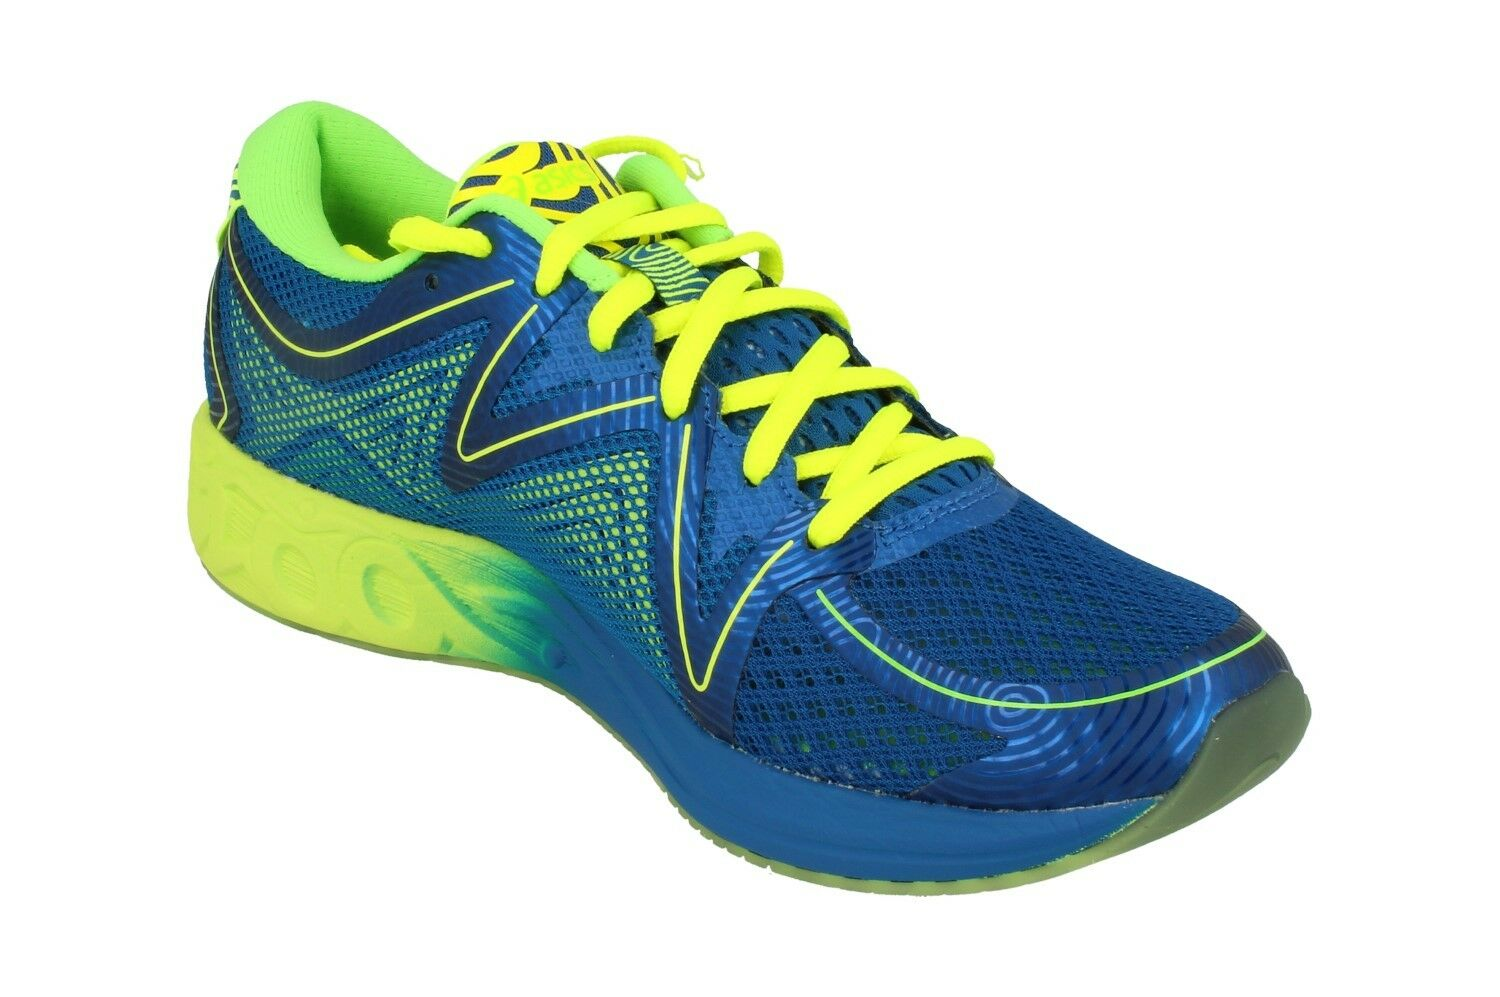 Asics Noosa Ff Mens Running Trainers T722N Sneakers shoes shoes shoes 4507 68871b